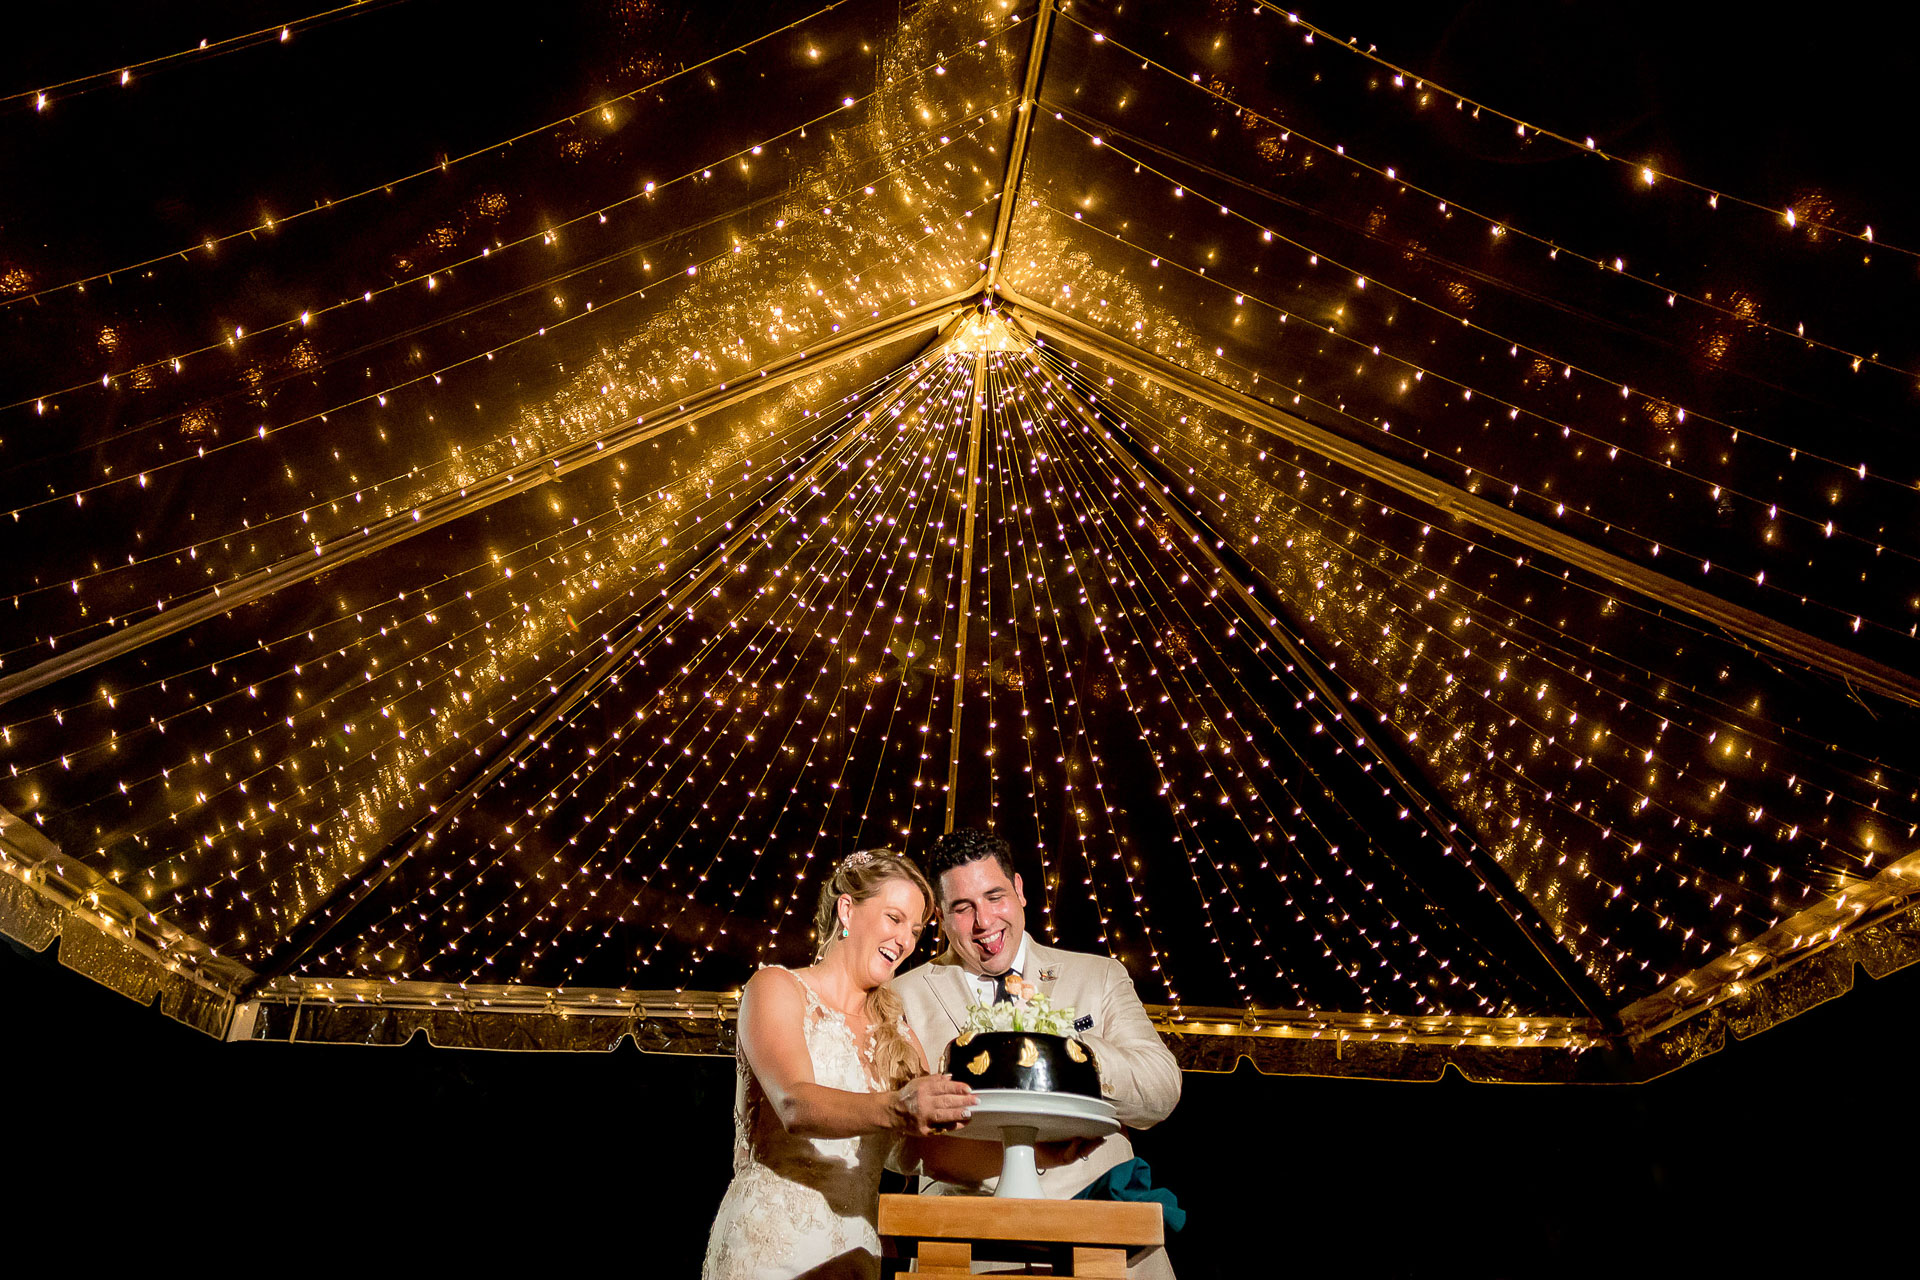 Arenas del Mar Costa Rica elopement reception venue photos | The newlyweds stand together beneath a tent of sparkling lights